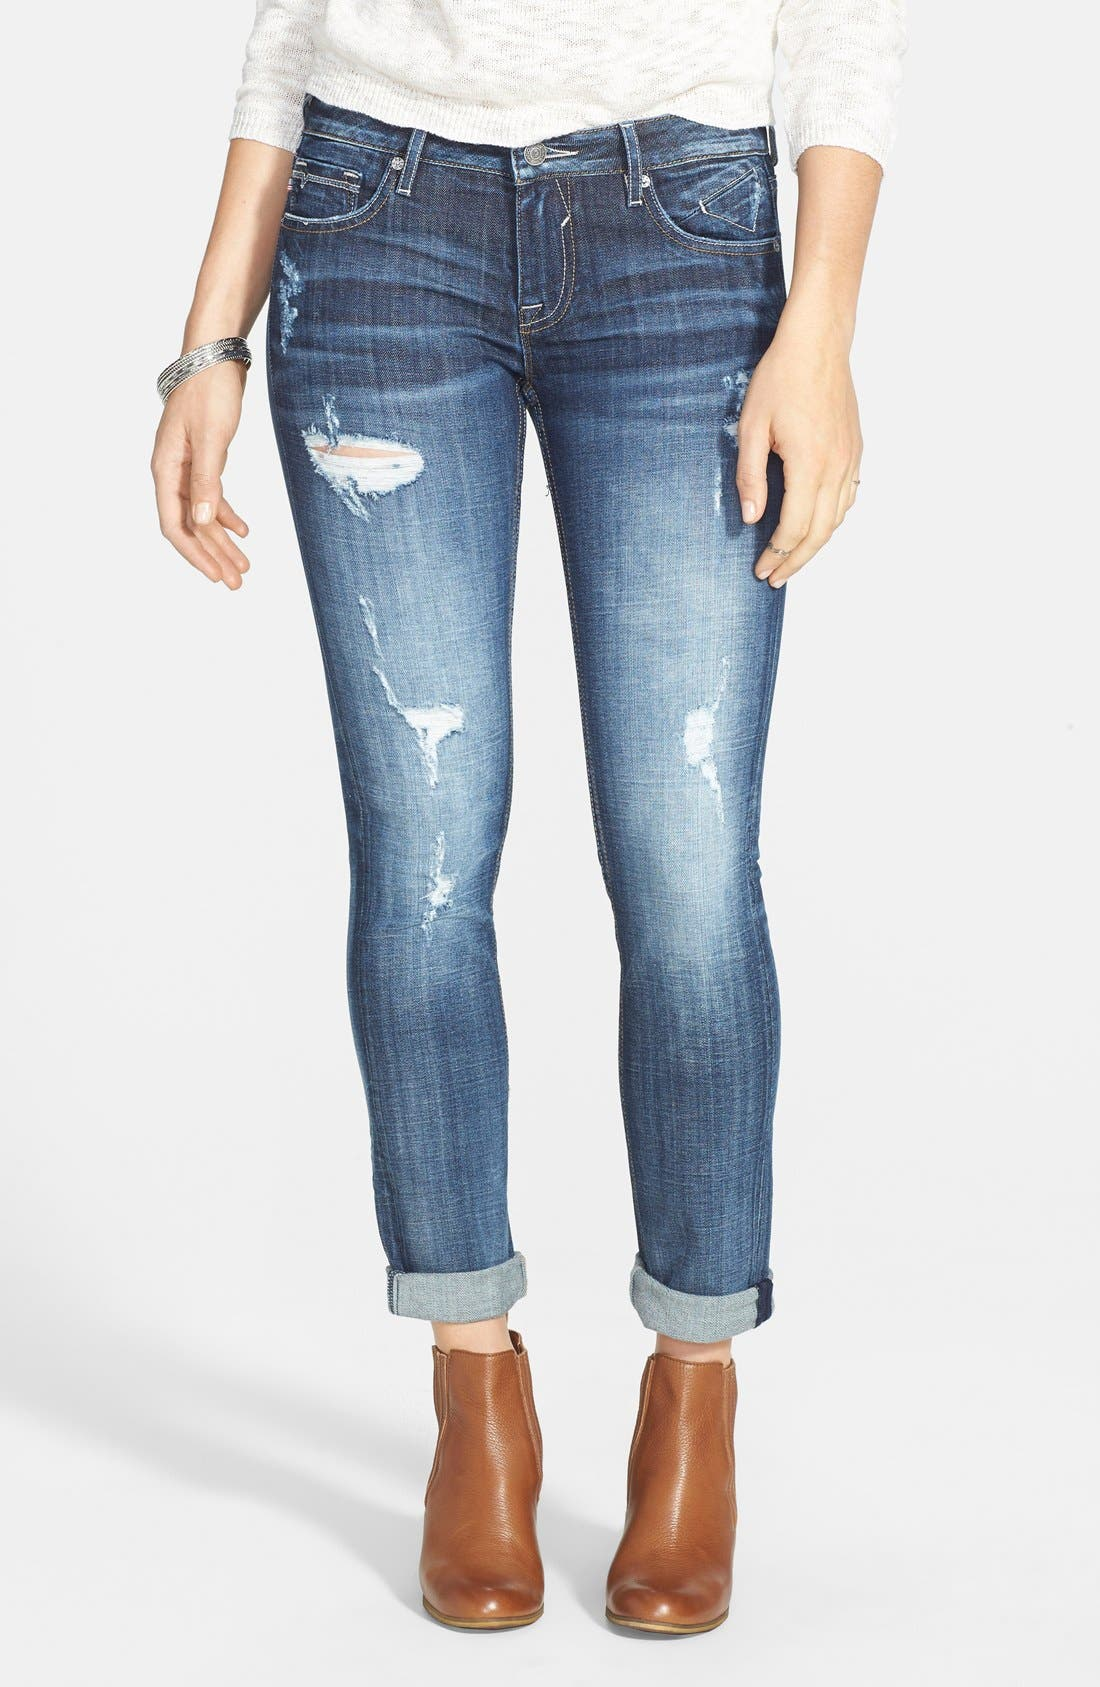 Alternate Image 1 Selected - Vigoss 'Thompson Tomboy' Crop Jeans (Medium Wash)